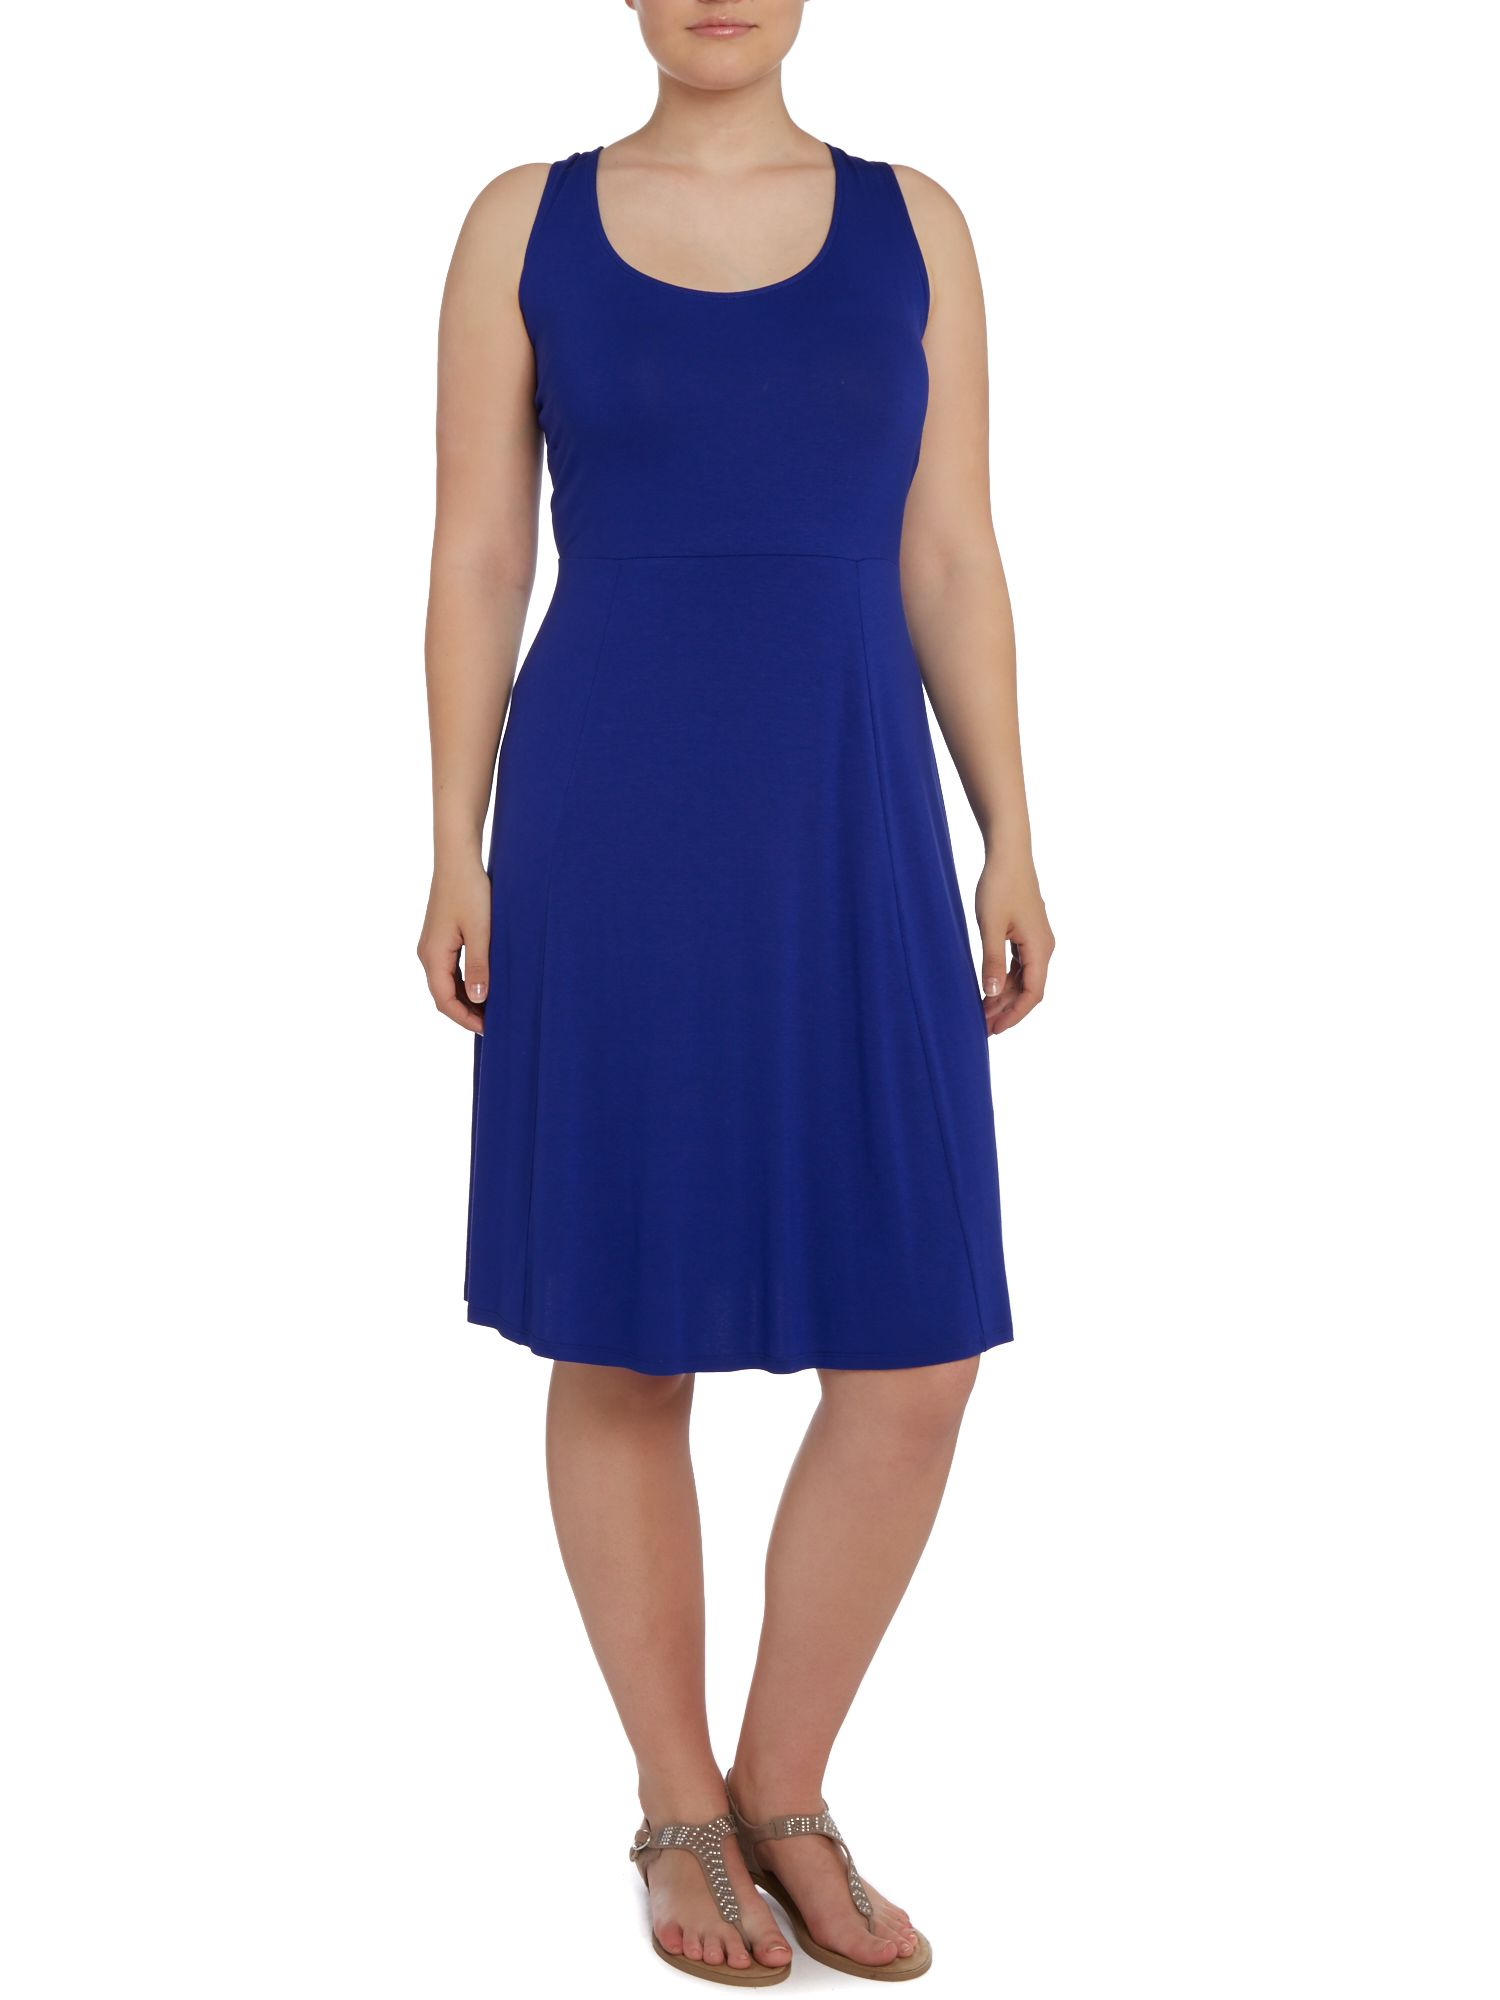 Cobalt sleeveless skater dress